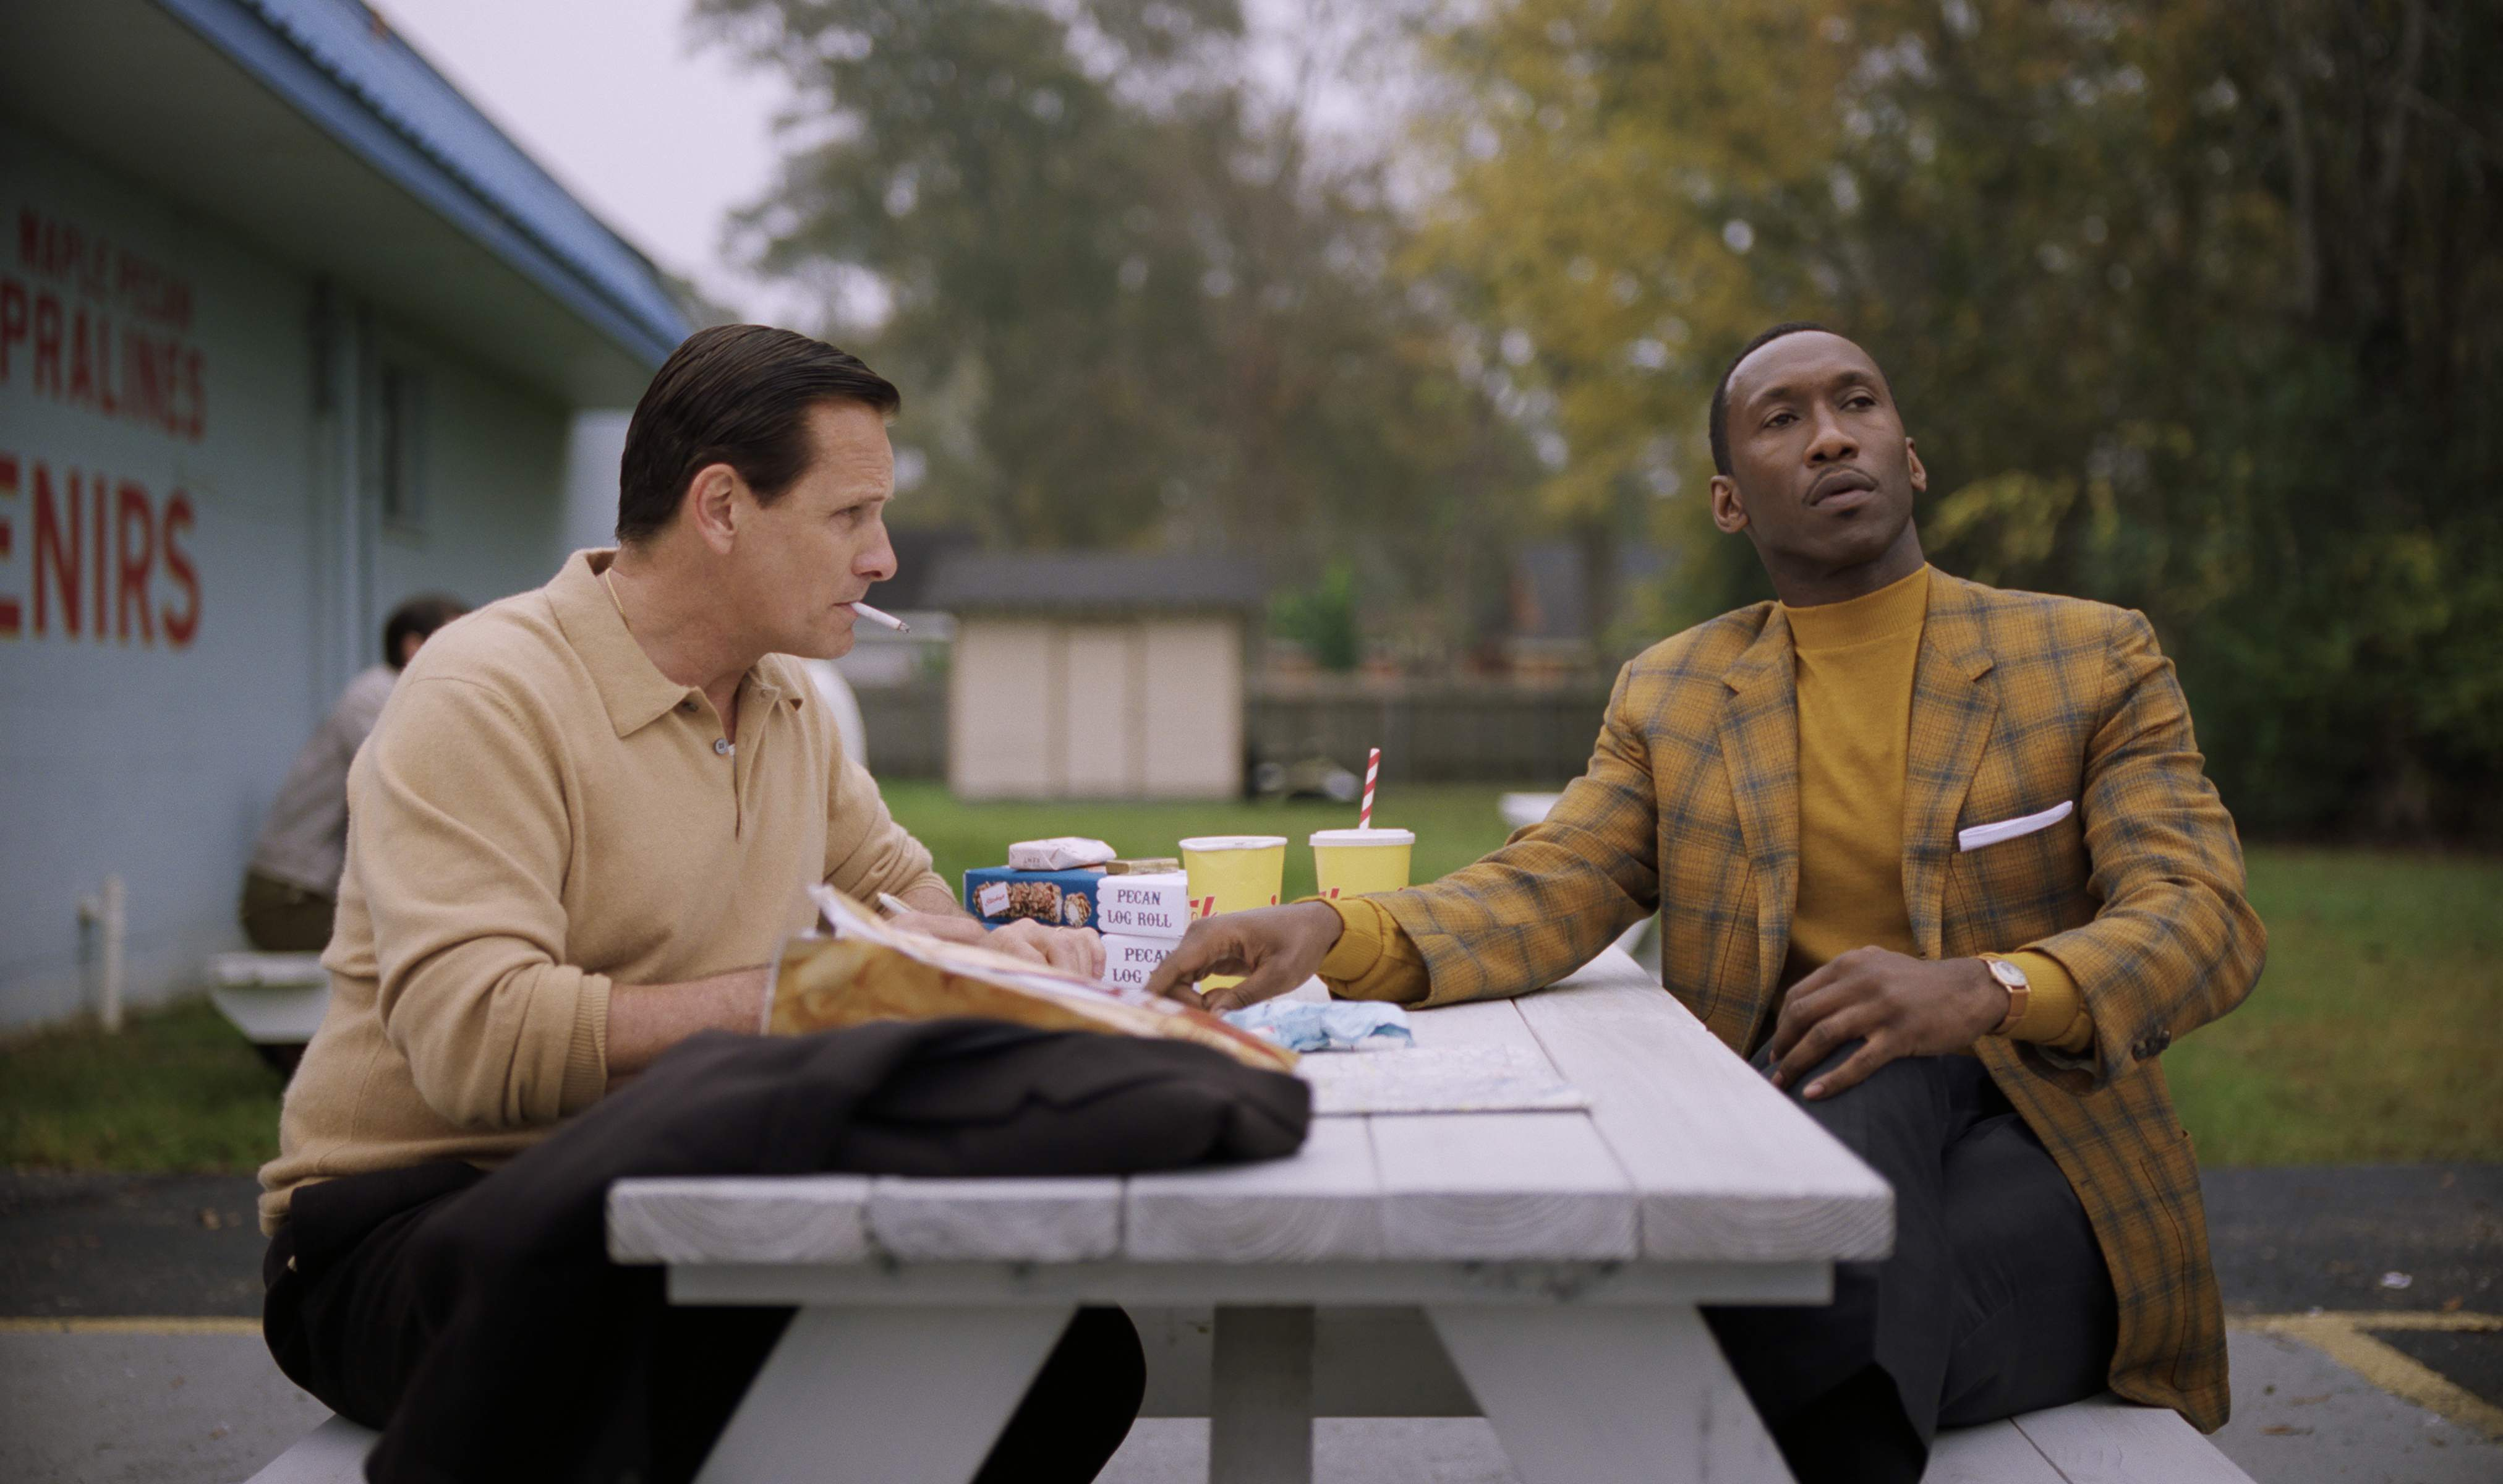 Dann Gire predicts 'Green Book' will lose best picture to 'Roma,' but Mahershala Ali, right, should win Best Supporting Actor for his role opposite Viggo Mortensen.